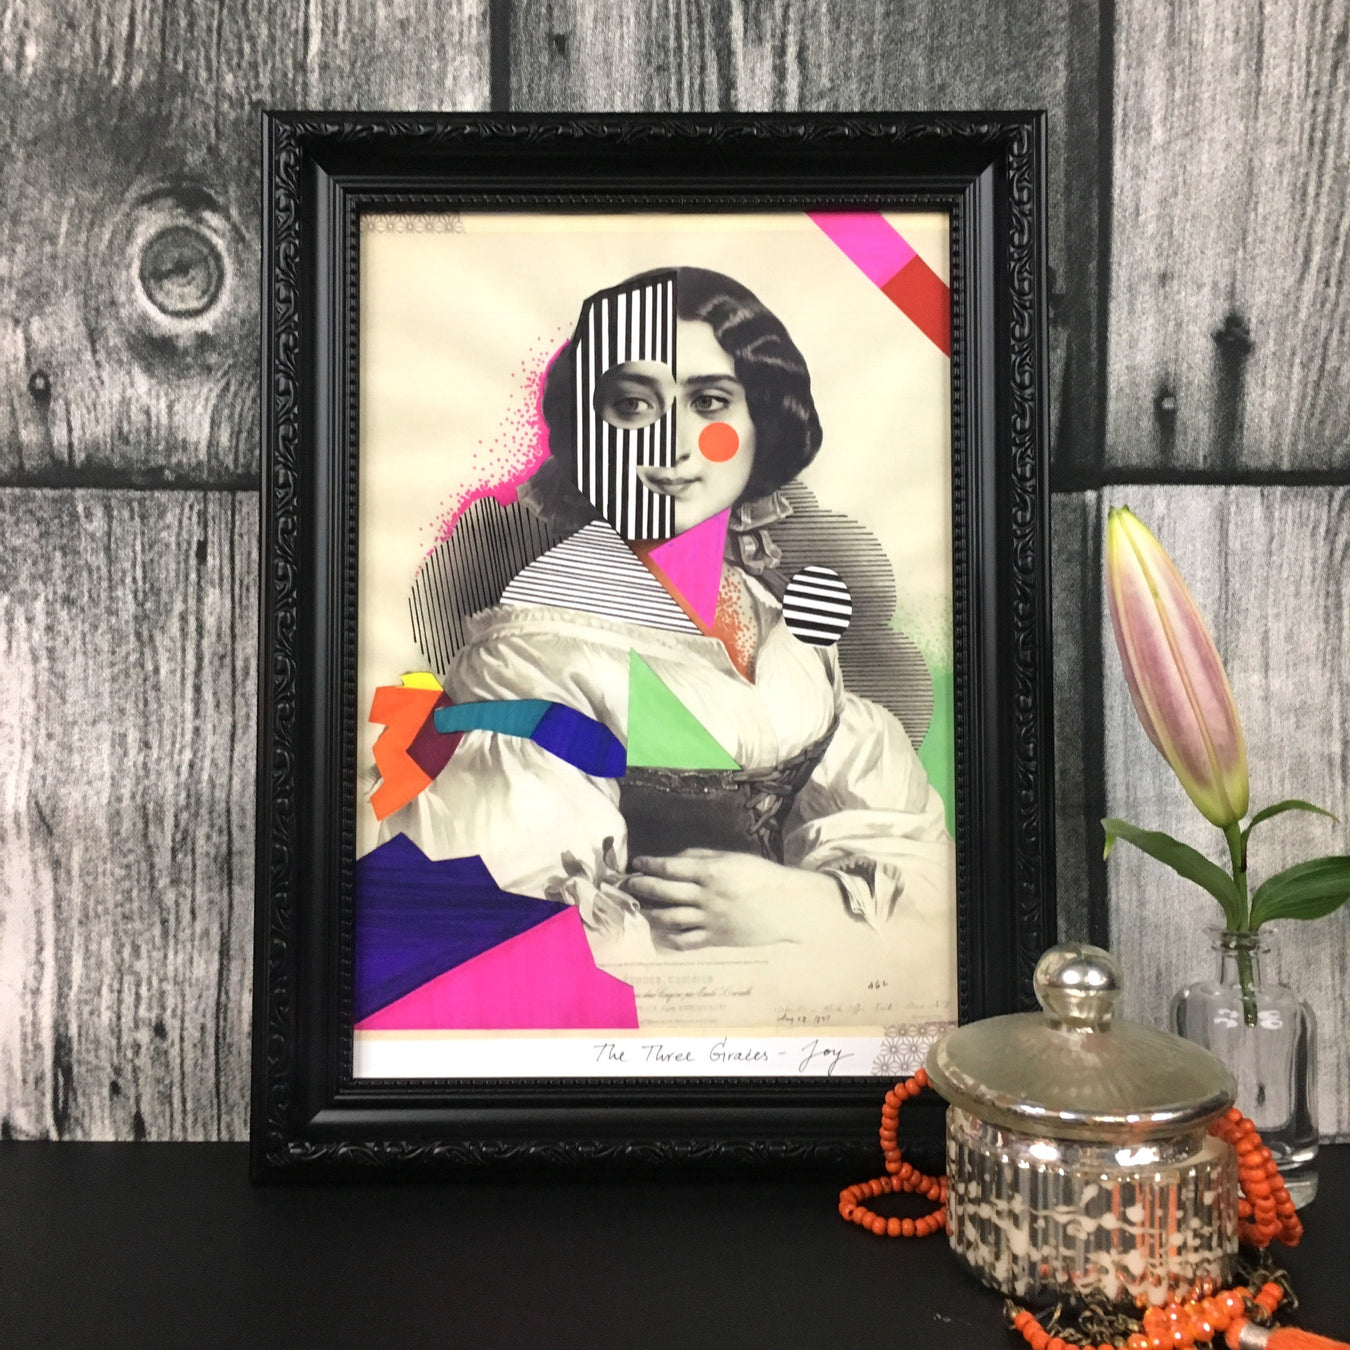 Framed art of a graceful woman